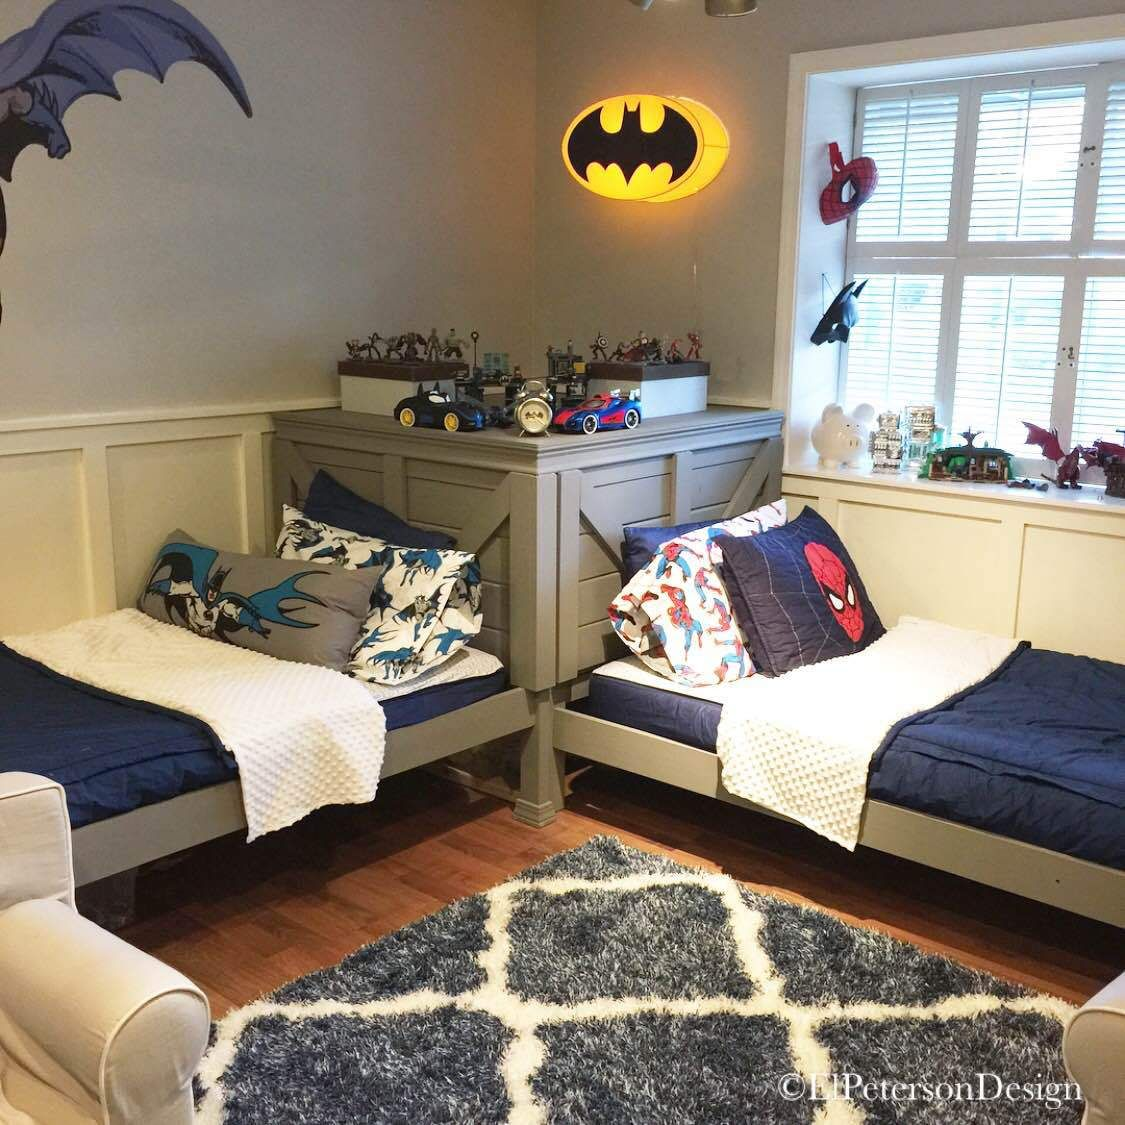 How to transform a bunk bed into twin beds Pinterest boys room ideas